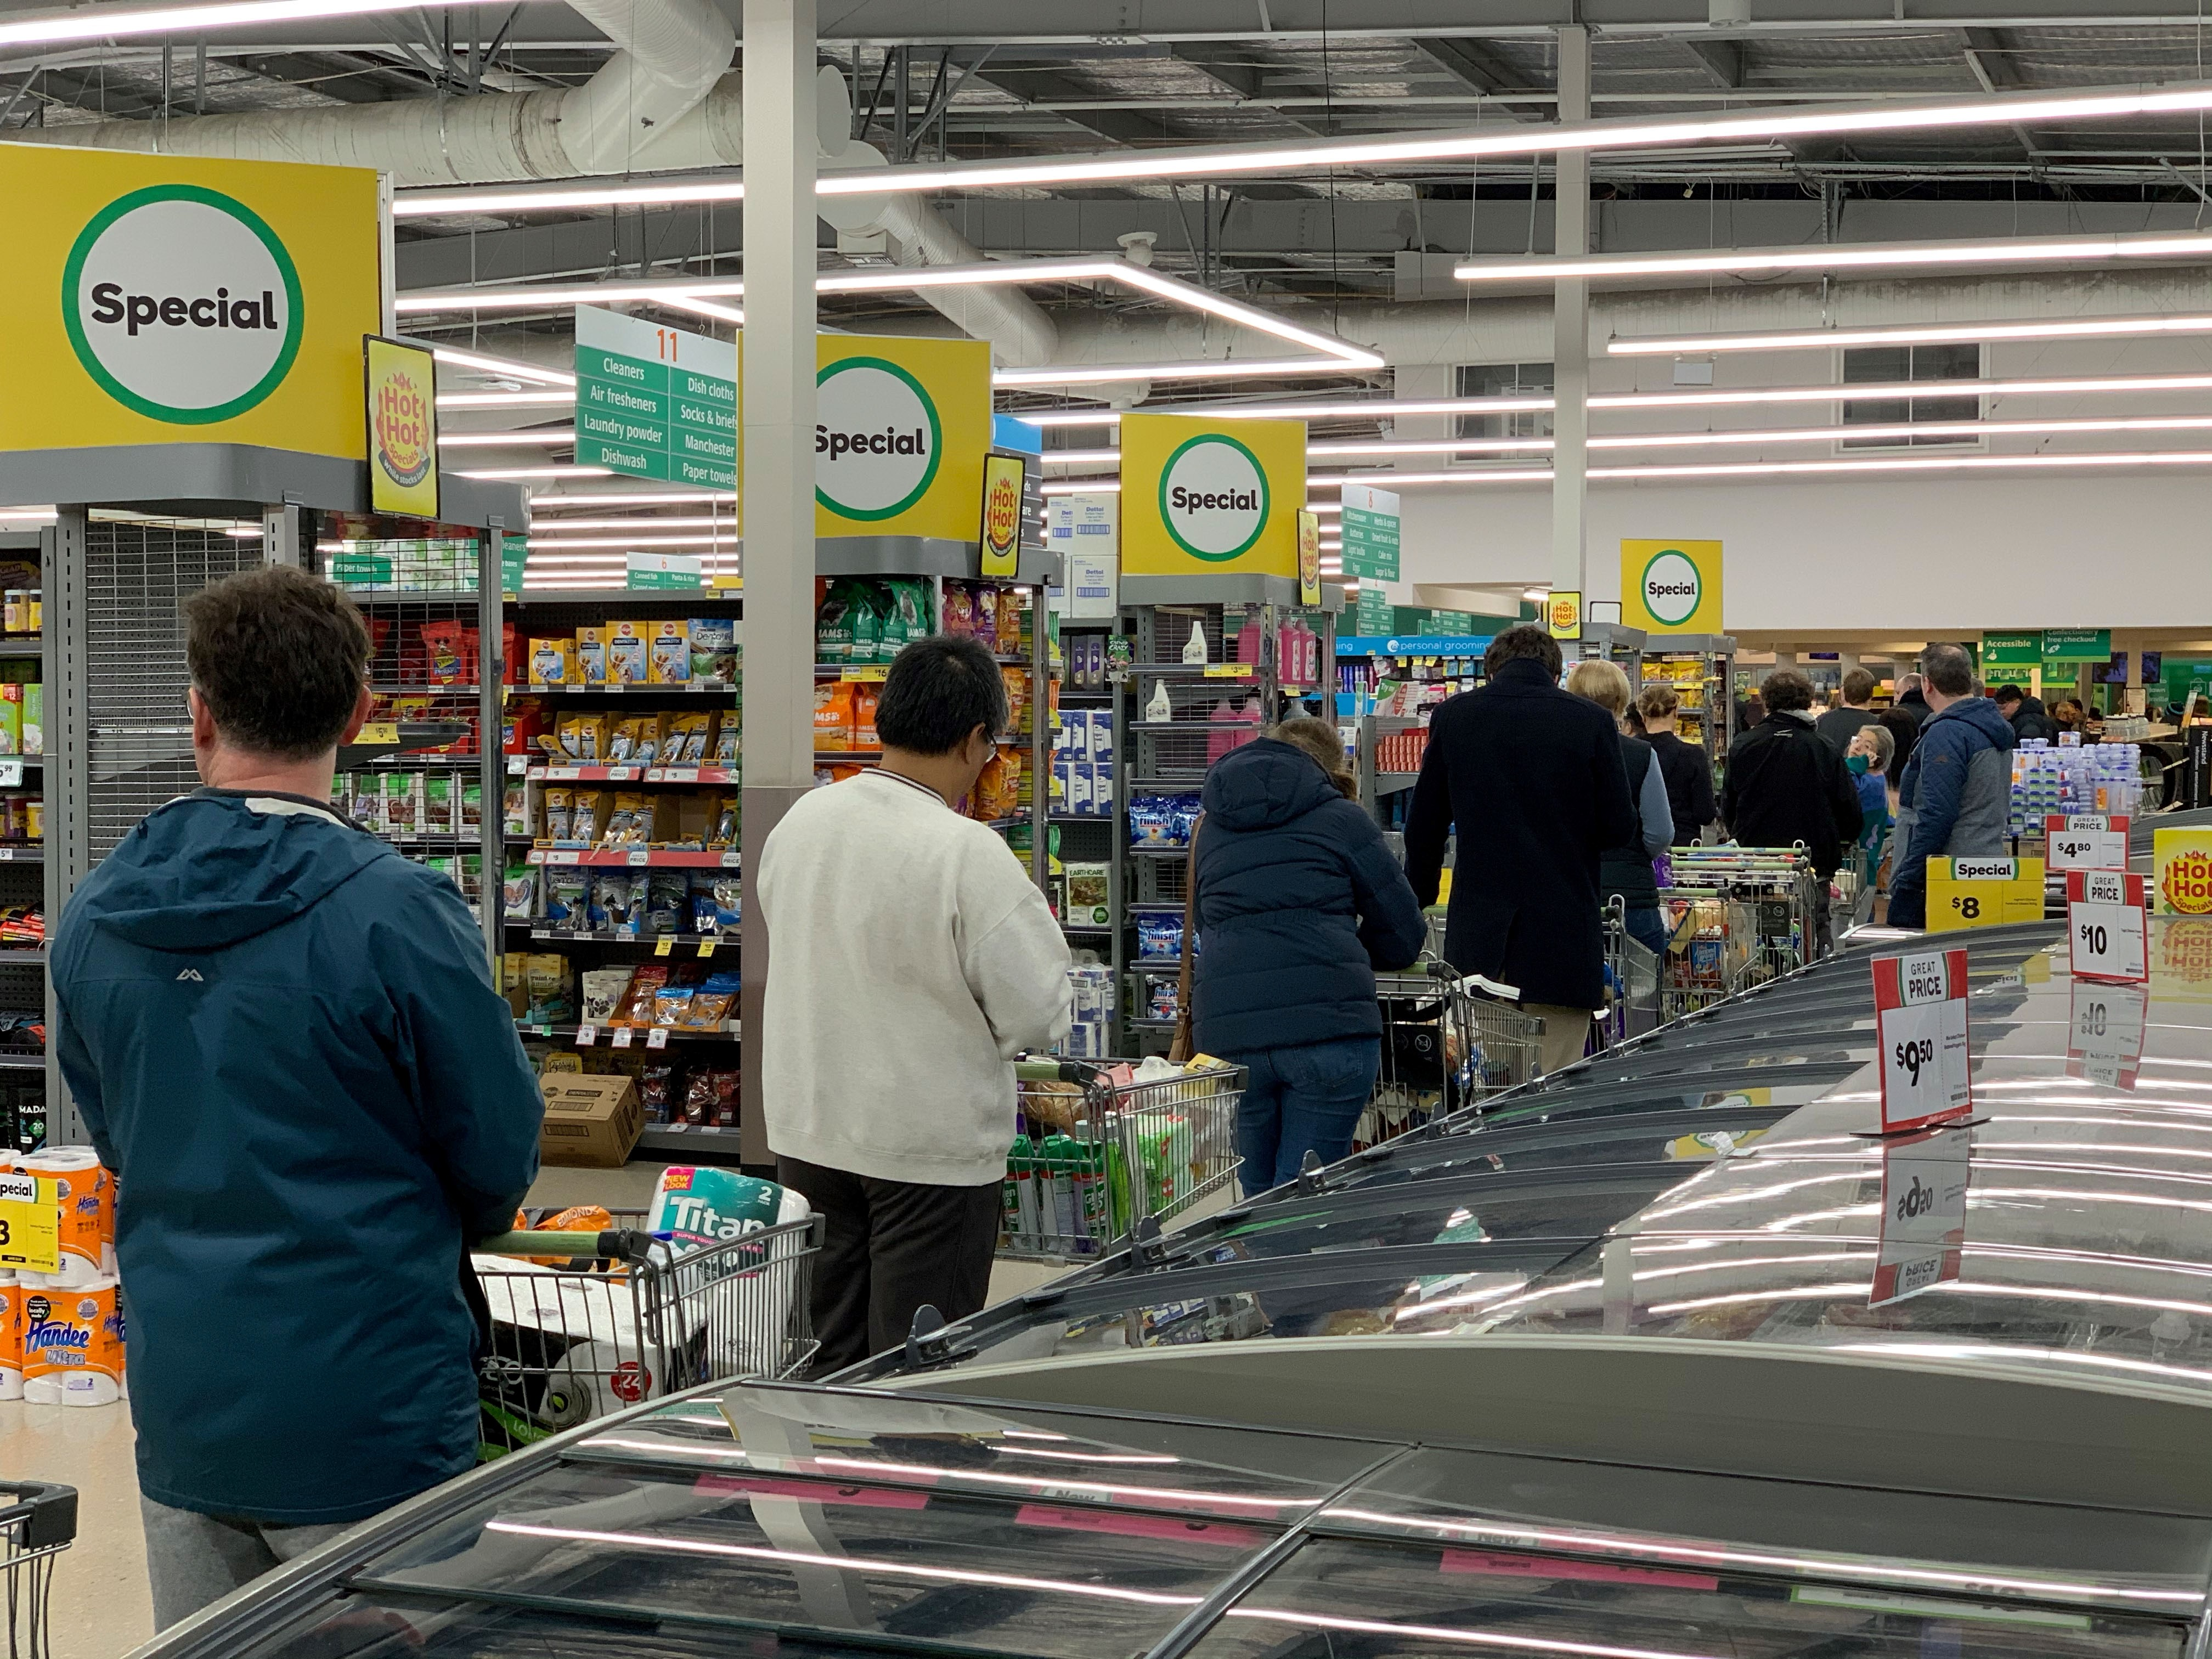 Shoppers shop at a supermarket in the suburb of Johnsonville in Wellington on August 11, 2020. - Auckland has been place at level 3 lockdown and the rest of the country has moved to level 2 after a family in South Auckland tested positive for covid. (Photo by MARTY MELVILLE/AFP via Getty Images)